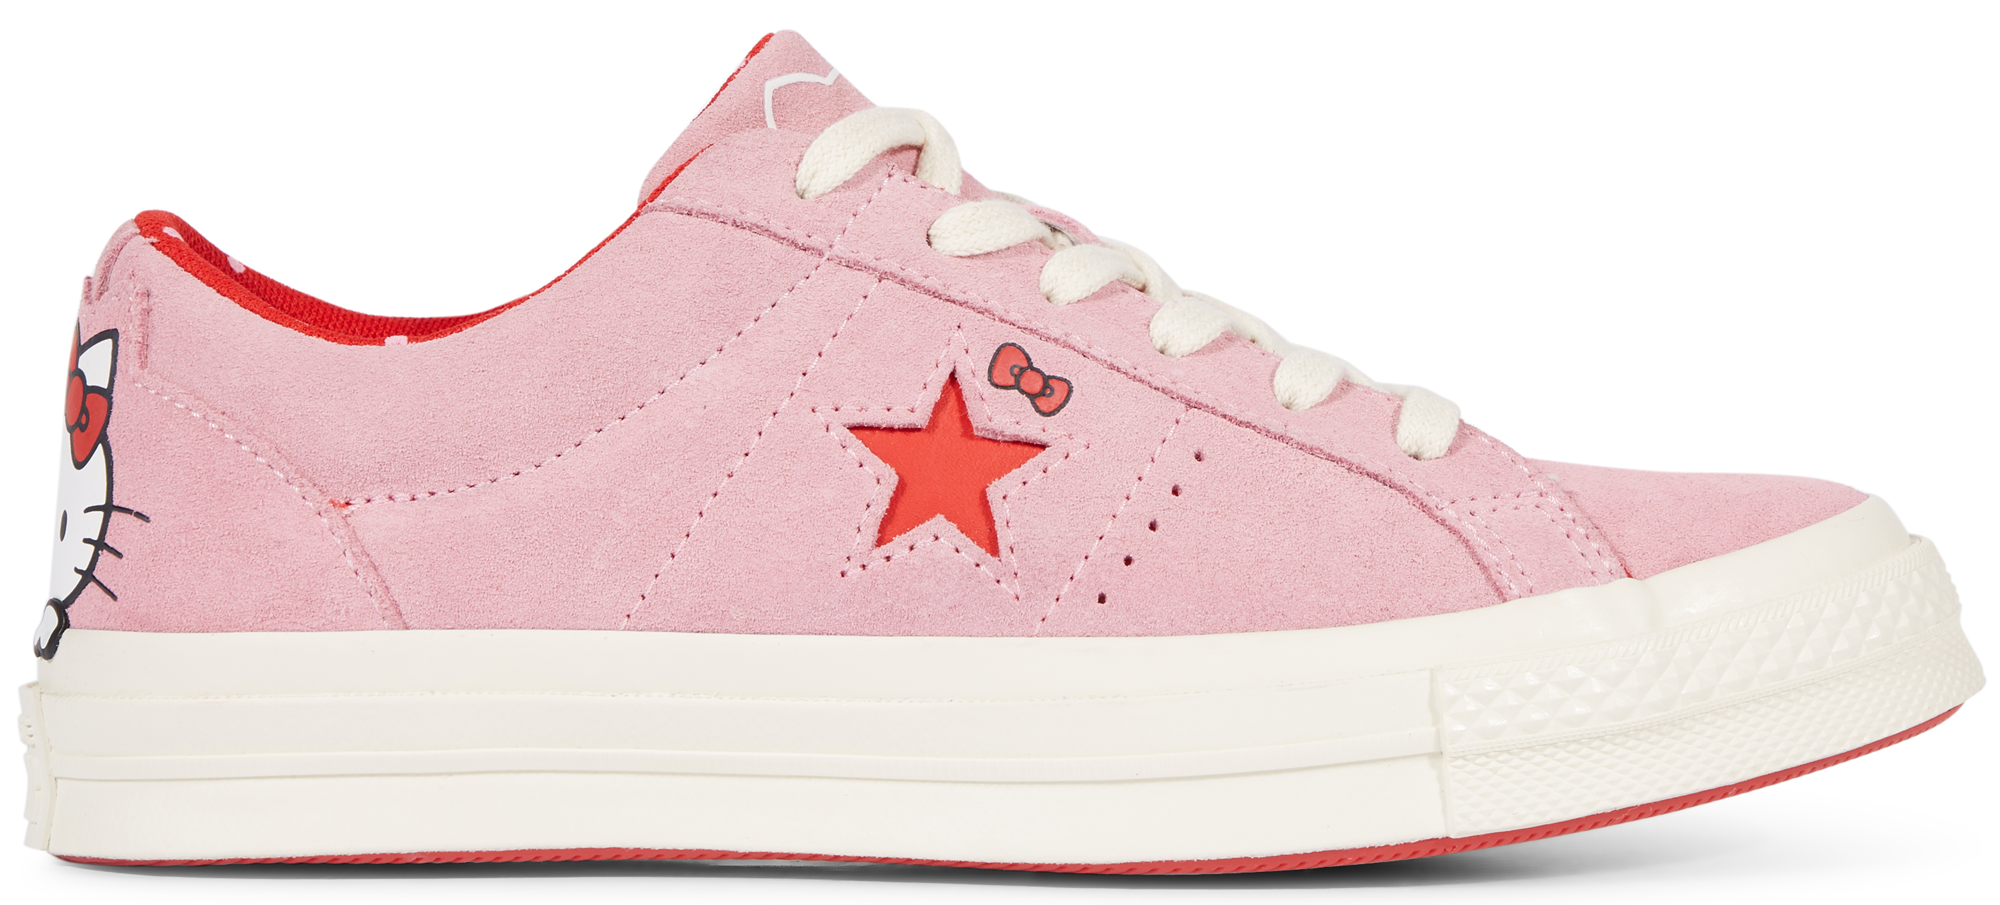 Converse One Star Ox Hello Kitty Pink